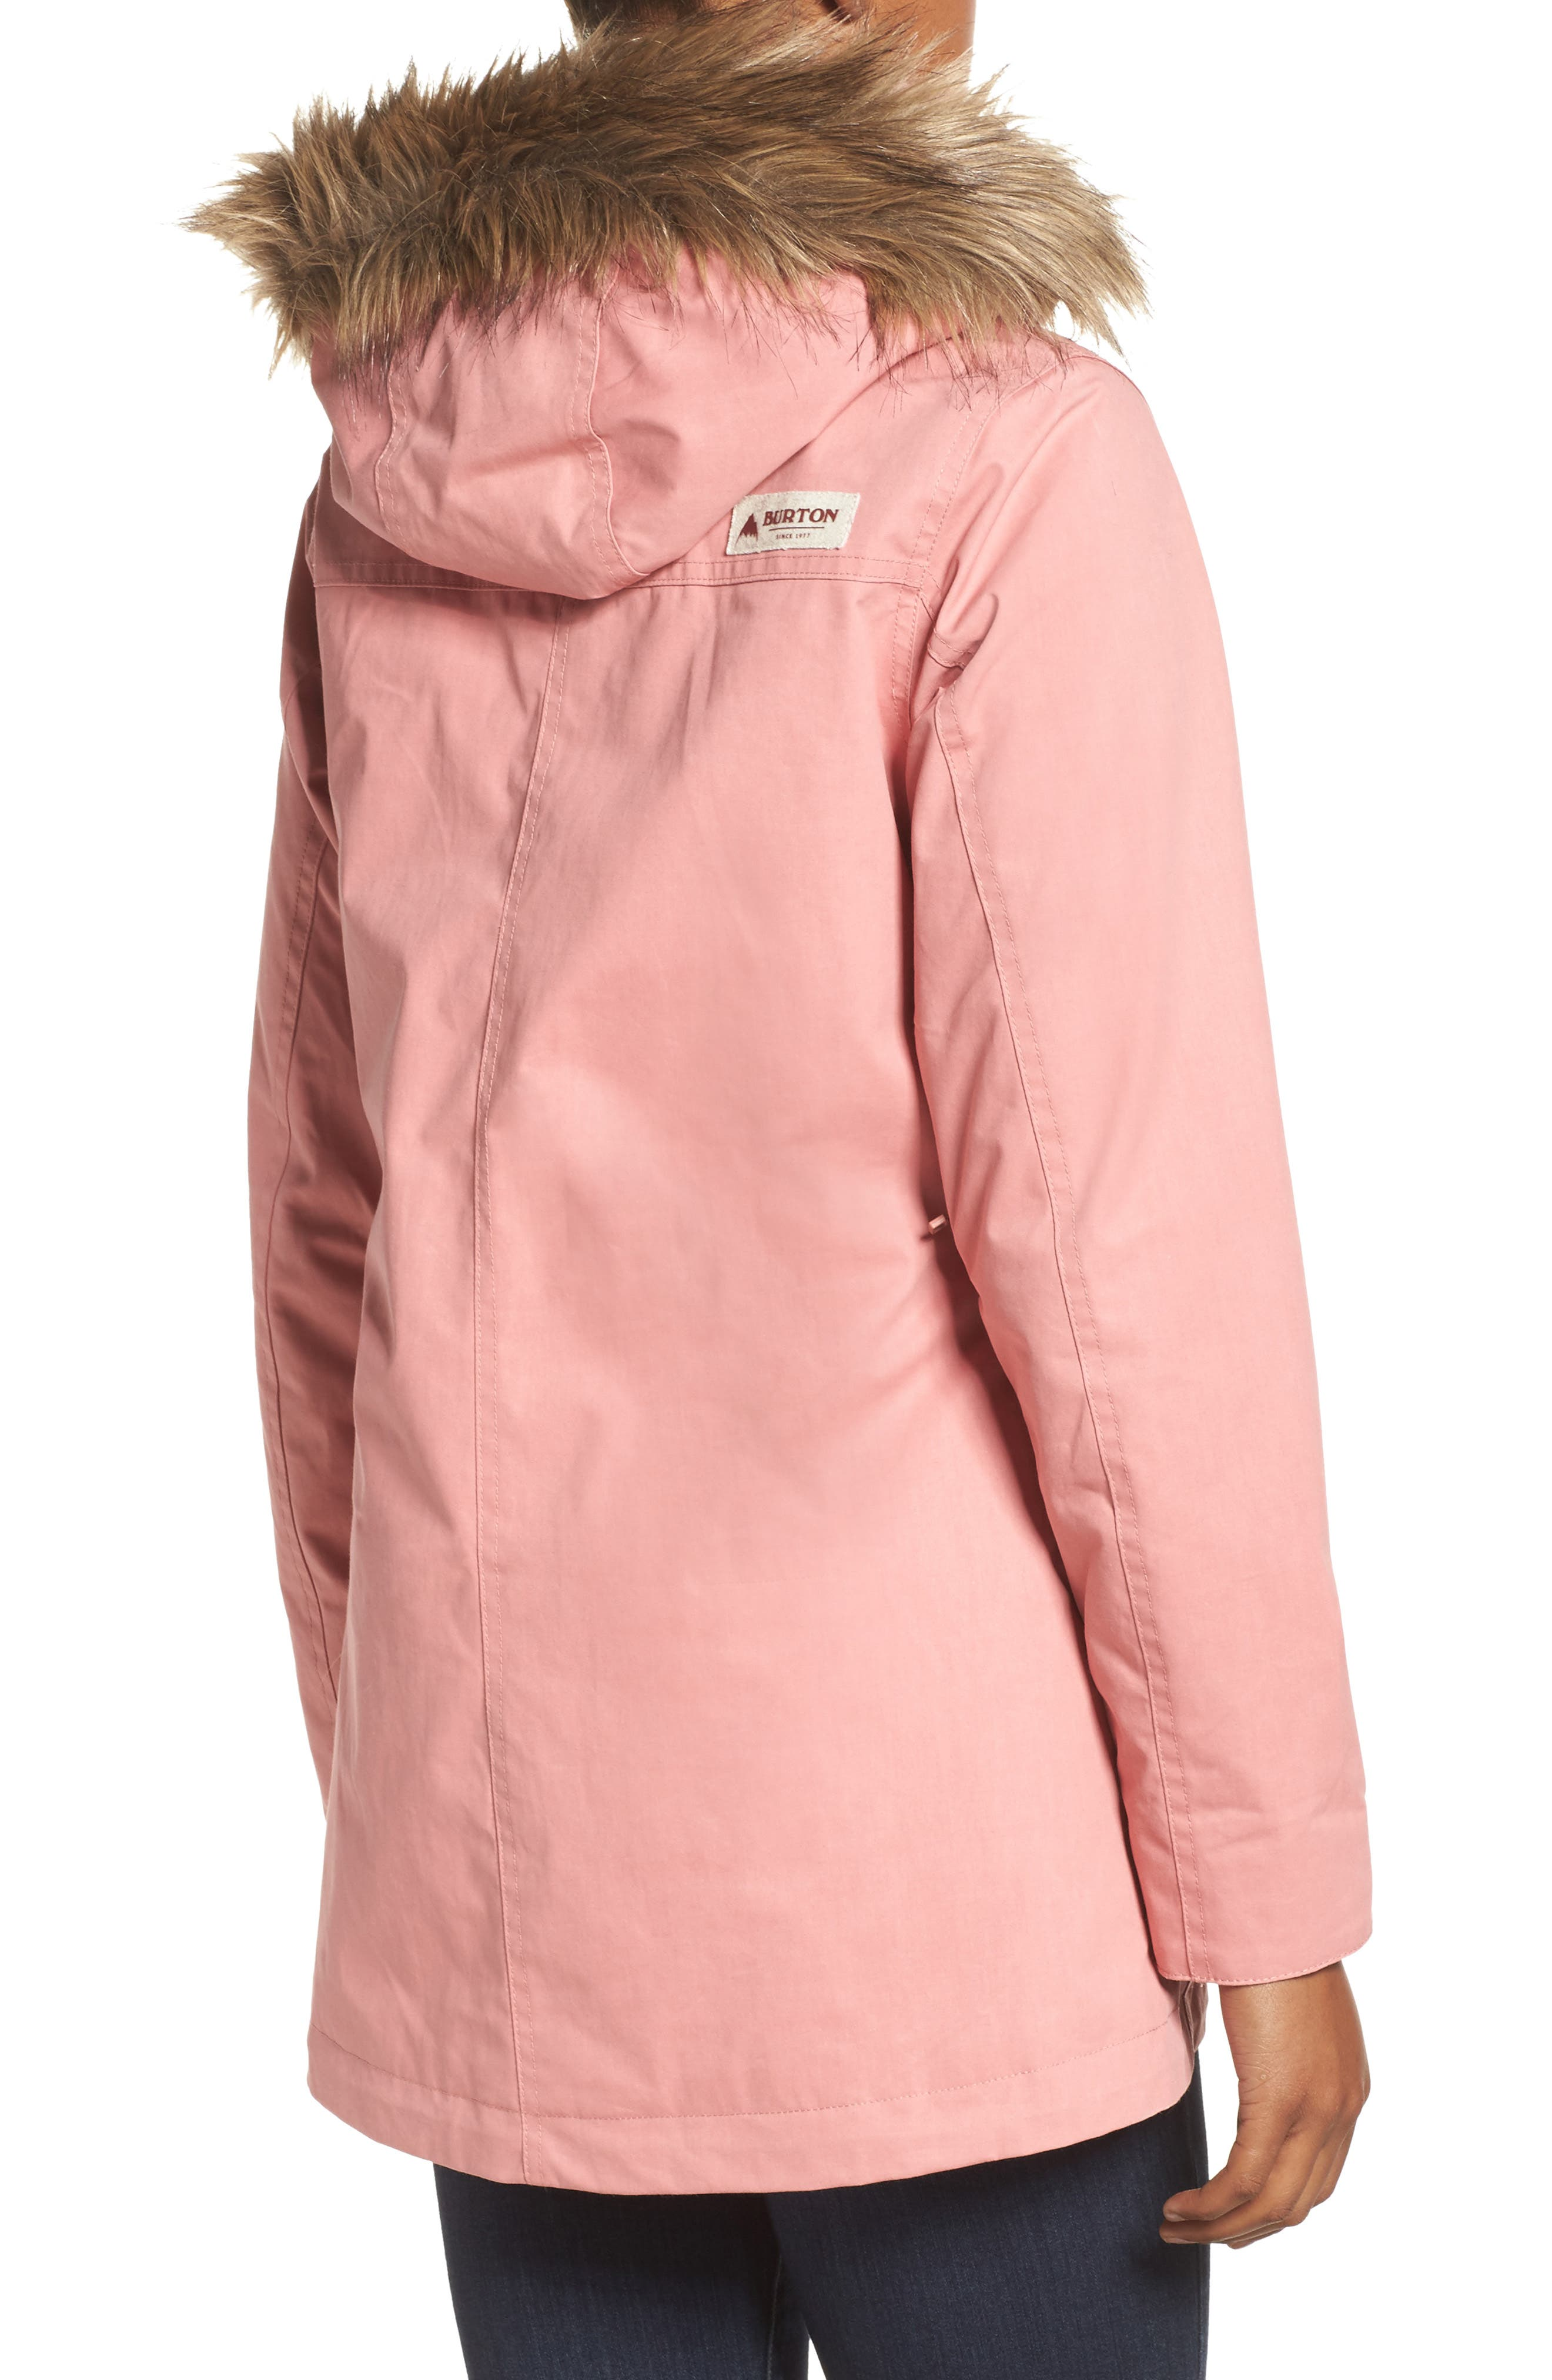 Hazel Waterproof Hooded Jacket with Removable Faux Fur Trim,                             Alternate thumbnail 2, color,                             Dusty Rose Wax